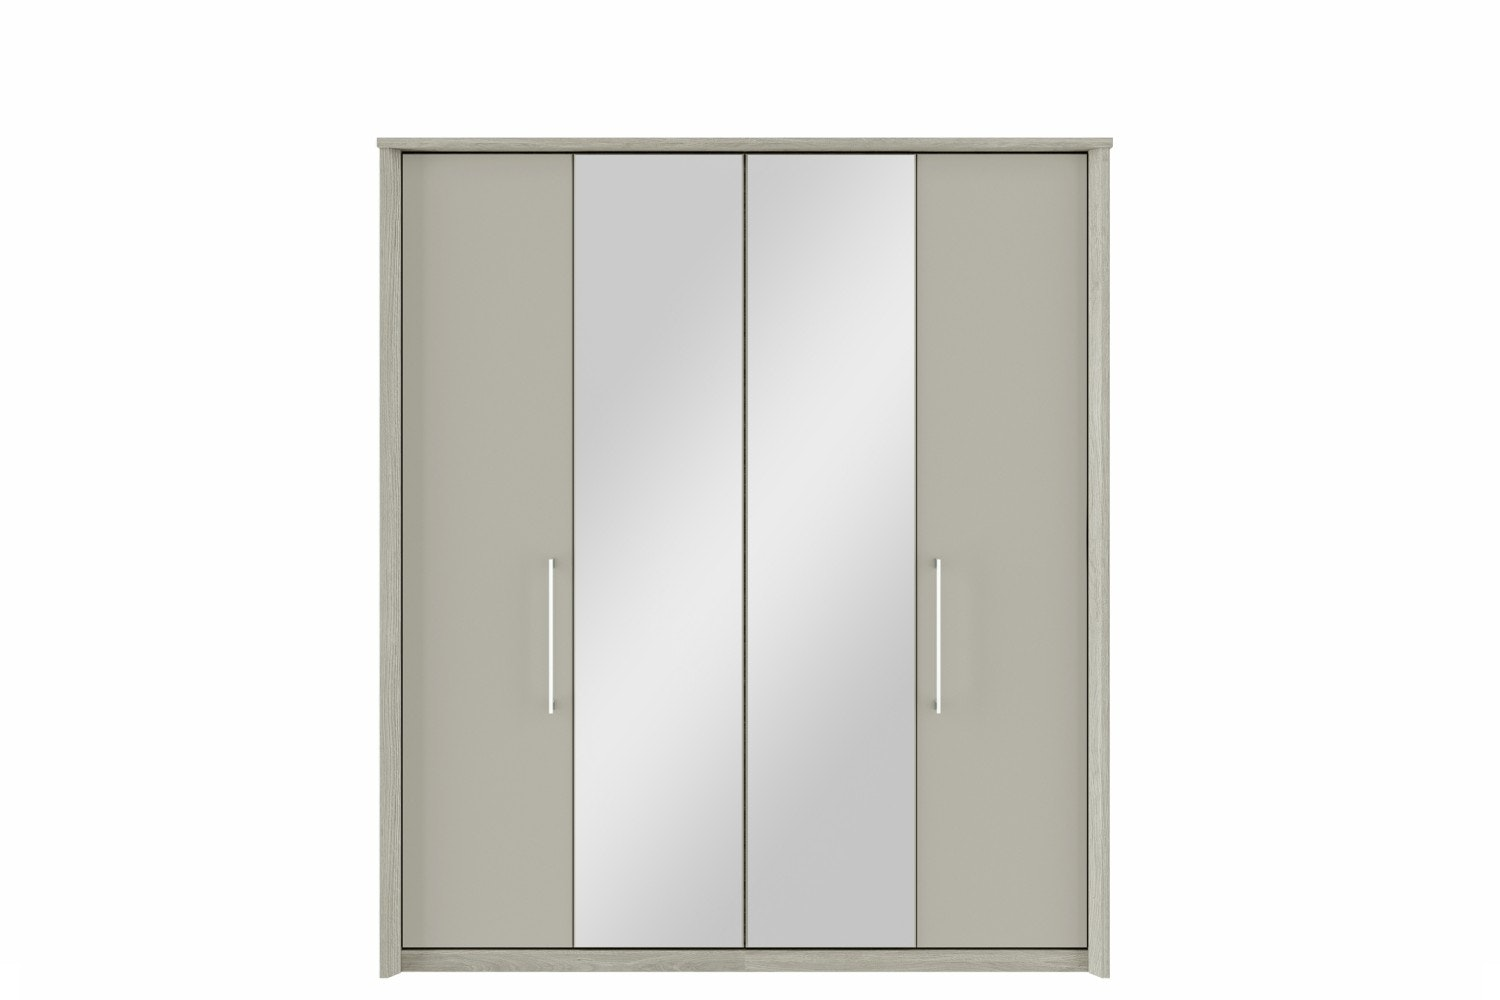 Presley Wardrobe | 4 Doors | Centre Mirror | Oak & Pale Grey